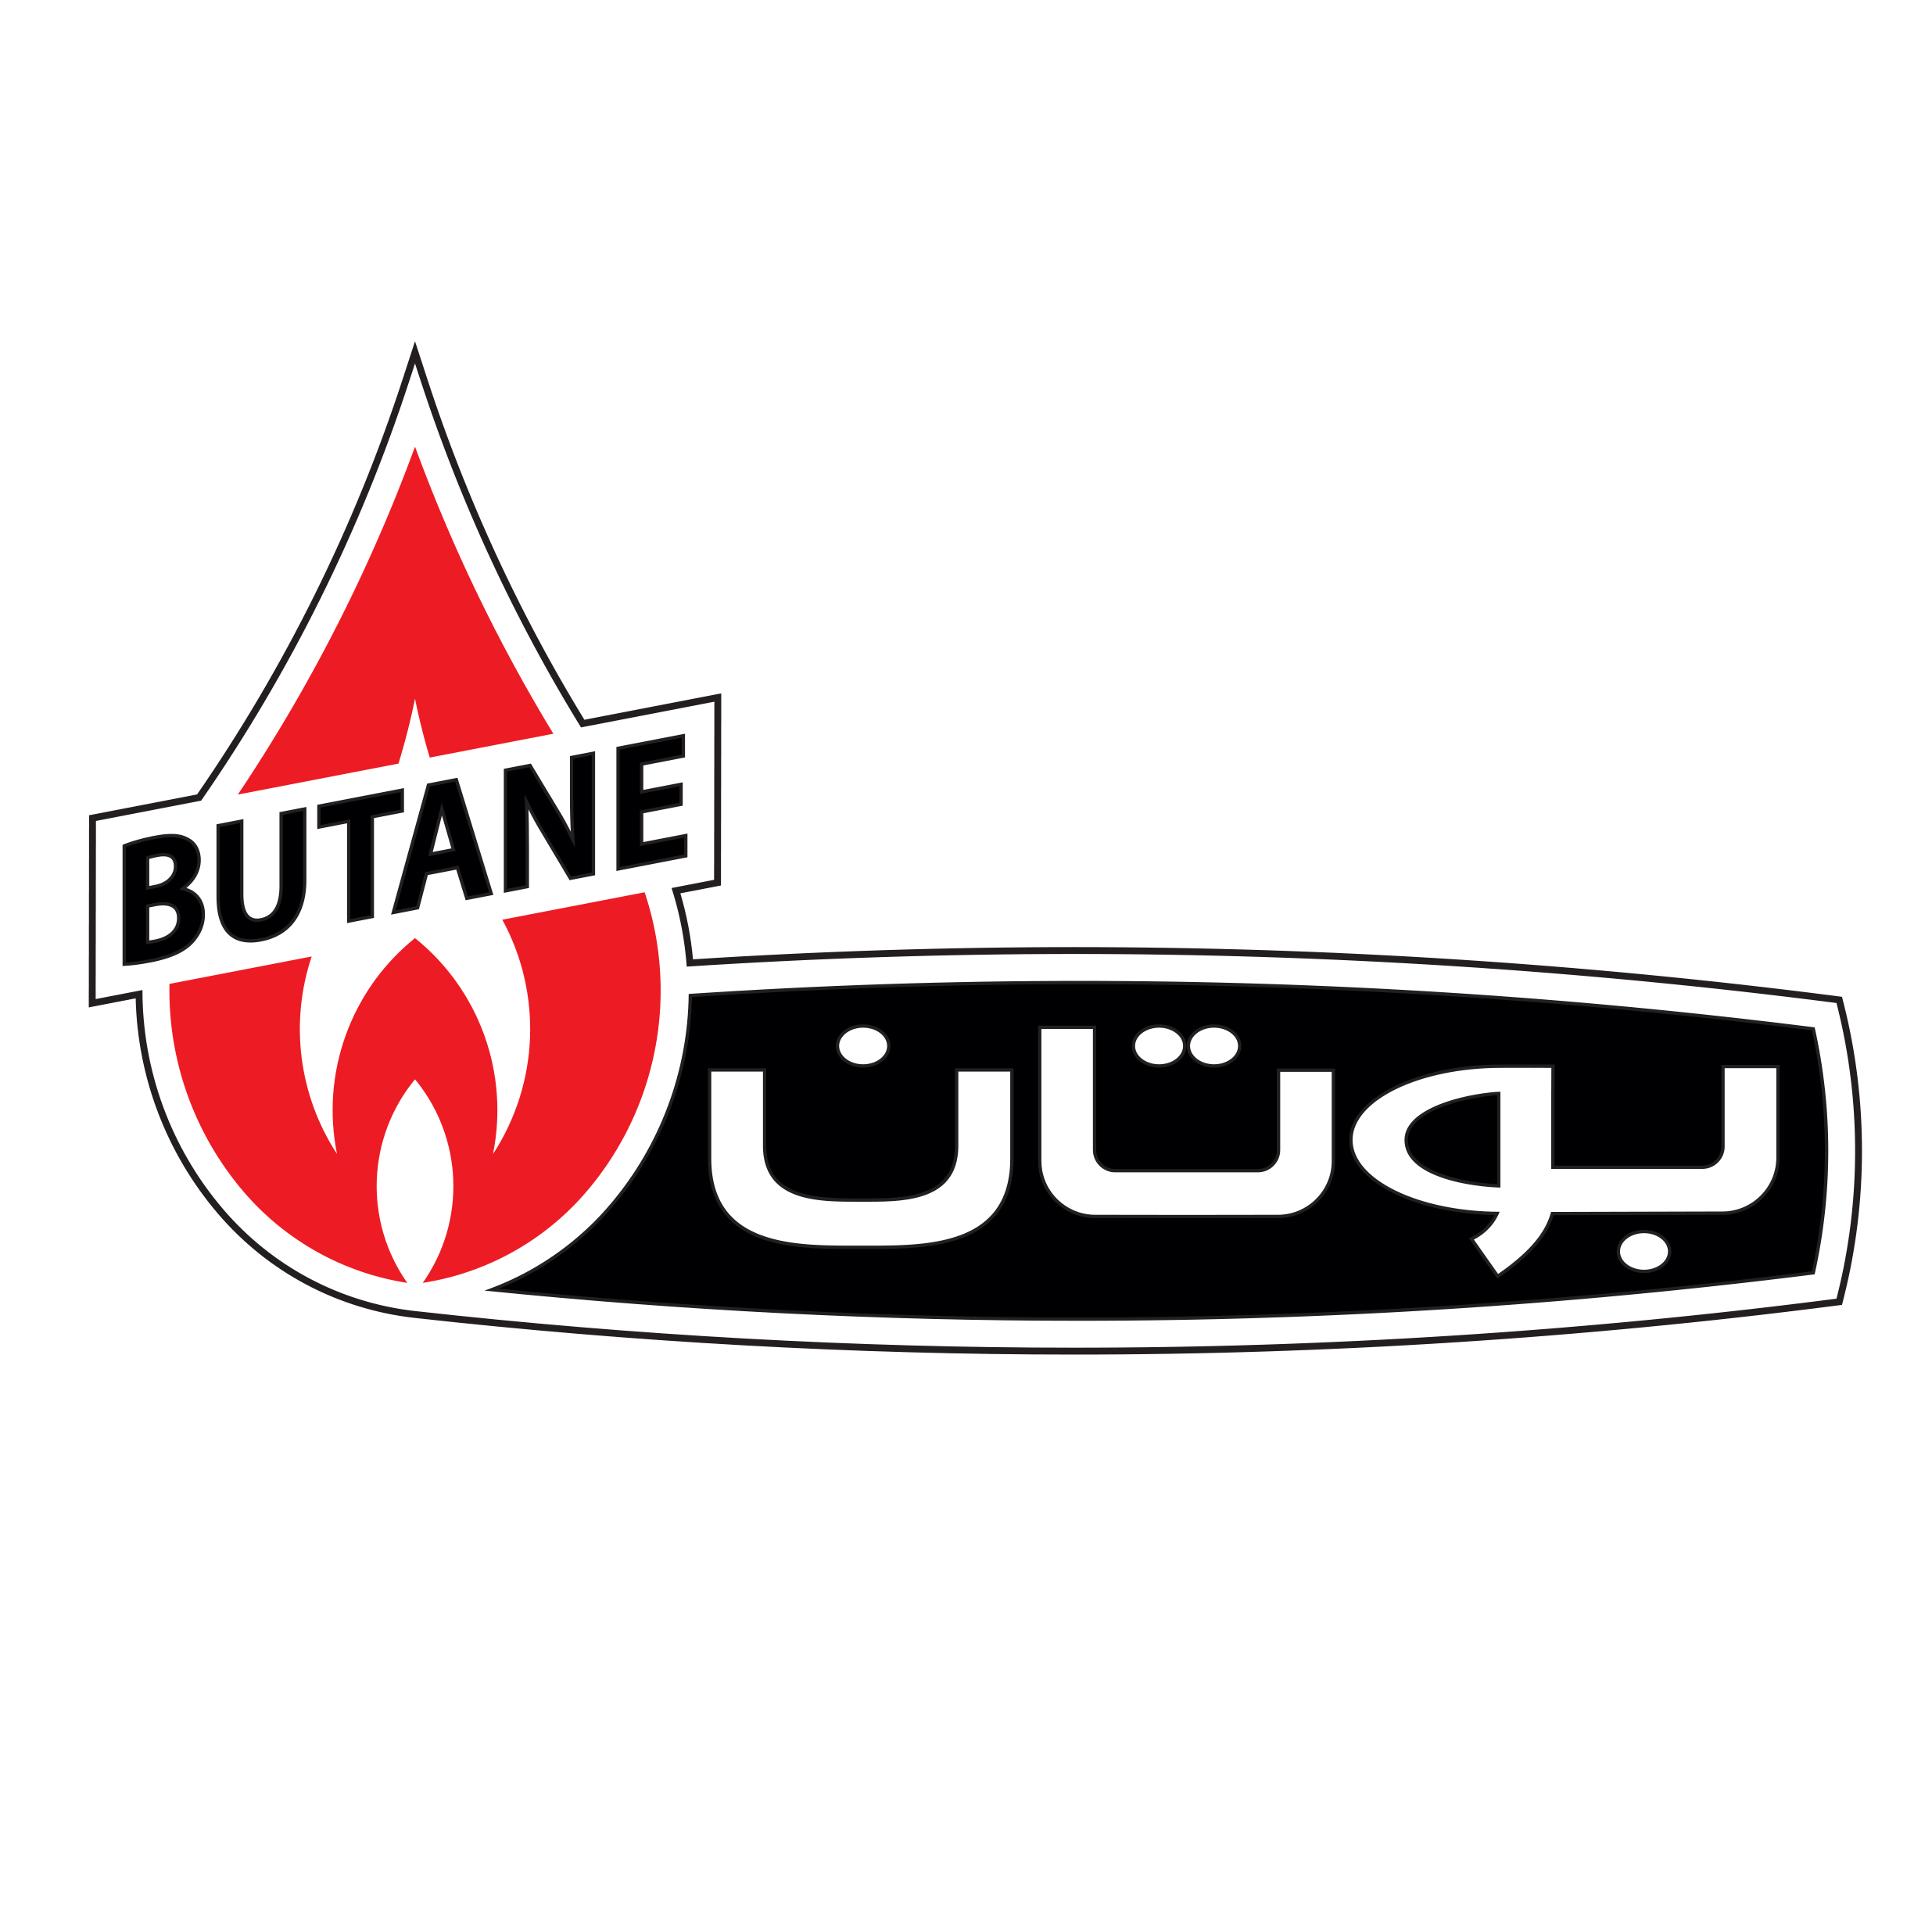 Butane | Iran Exports Companies, Services & Products | IREX